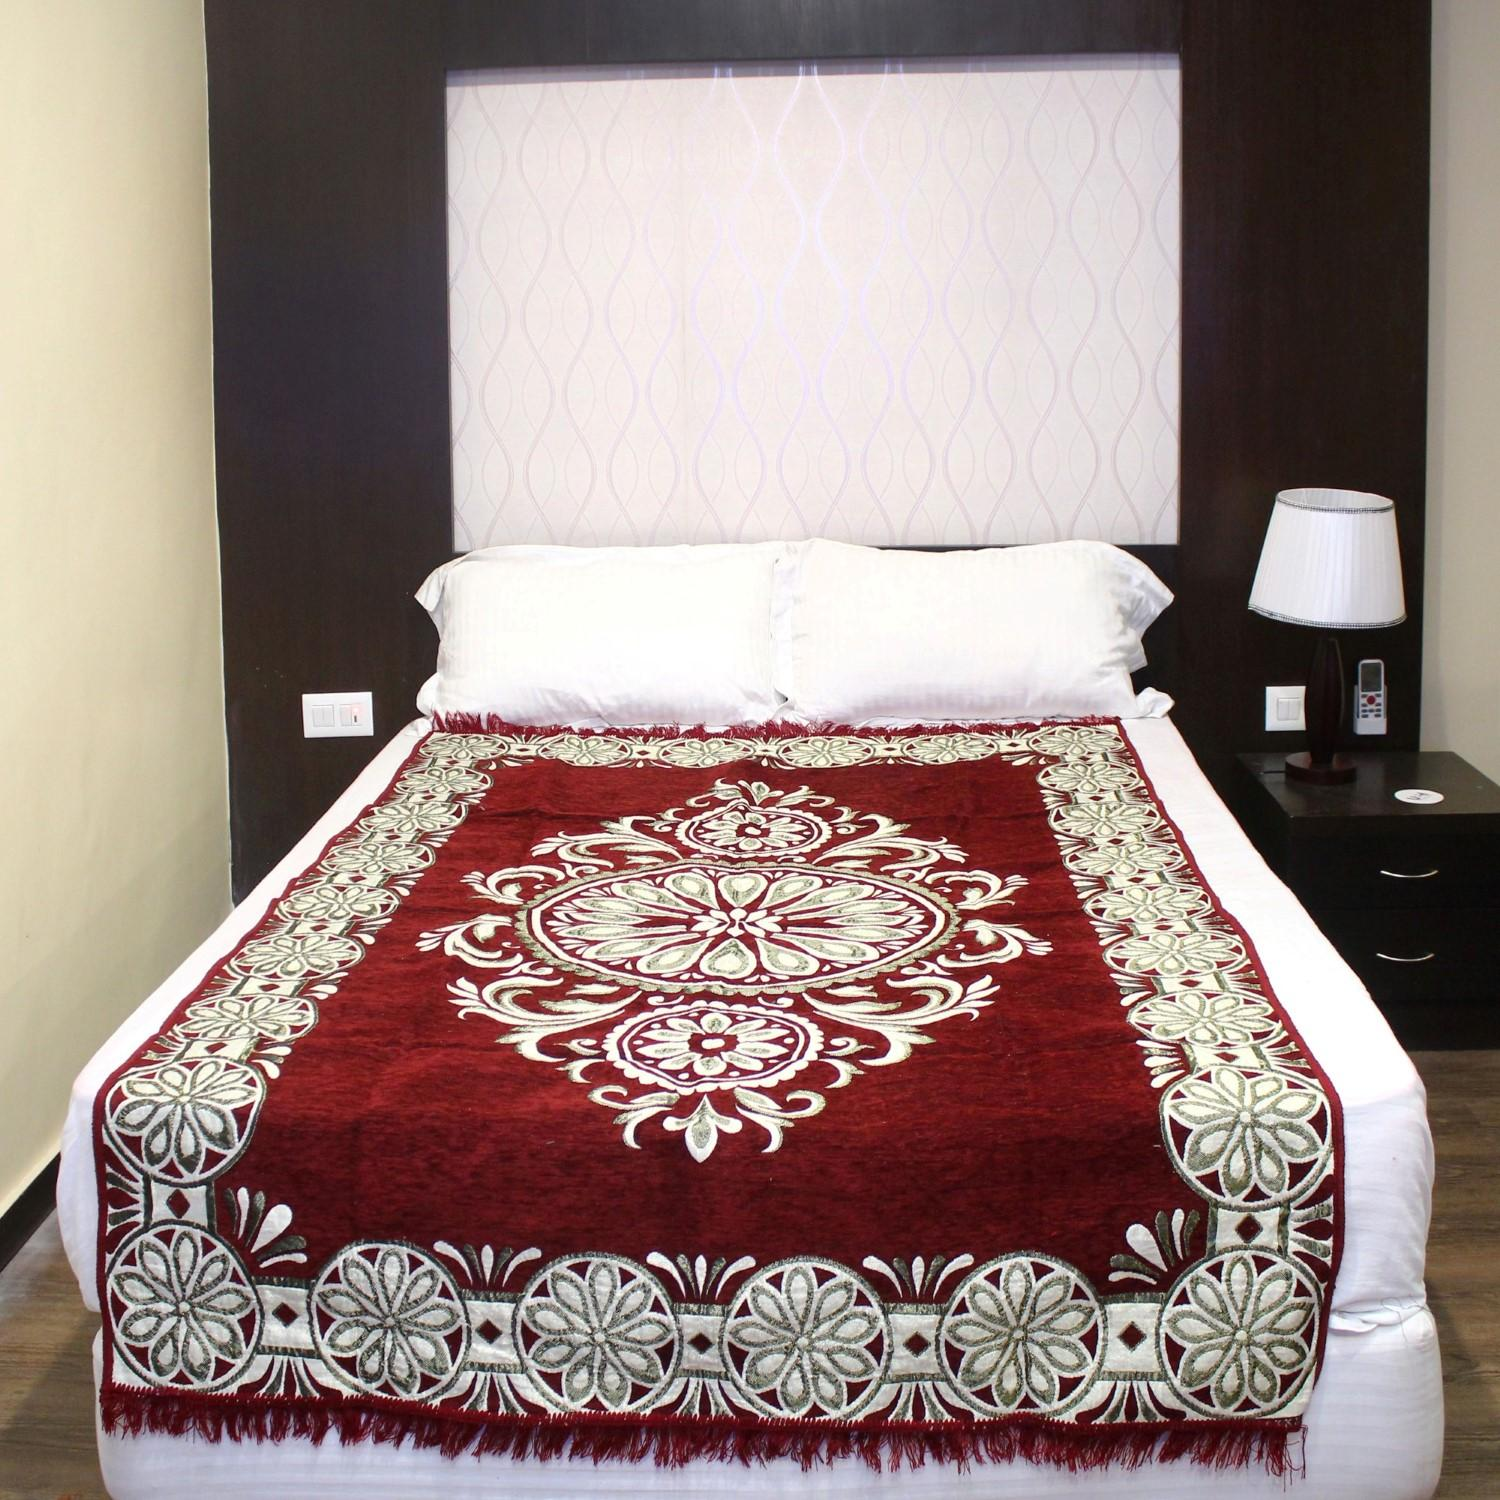 Home Home Decor Buy Home Home Decor At Best Price In Nepal Www